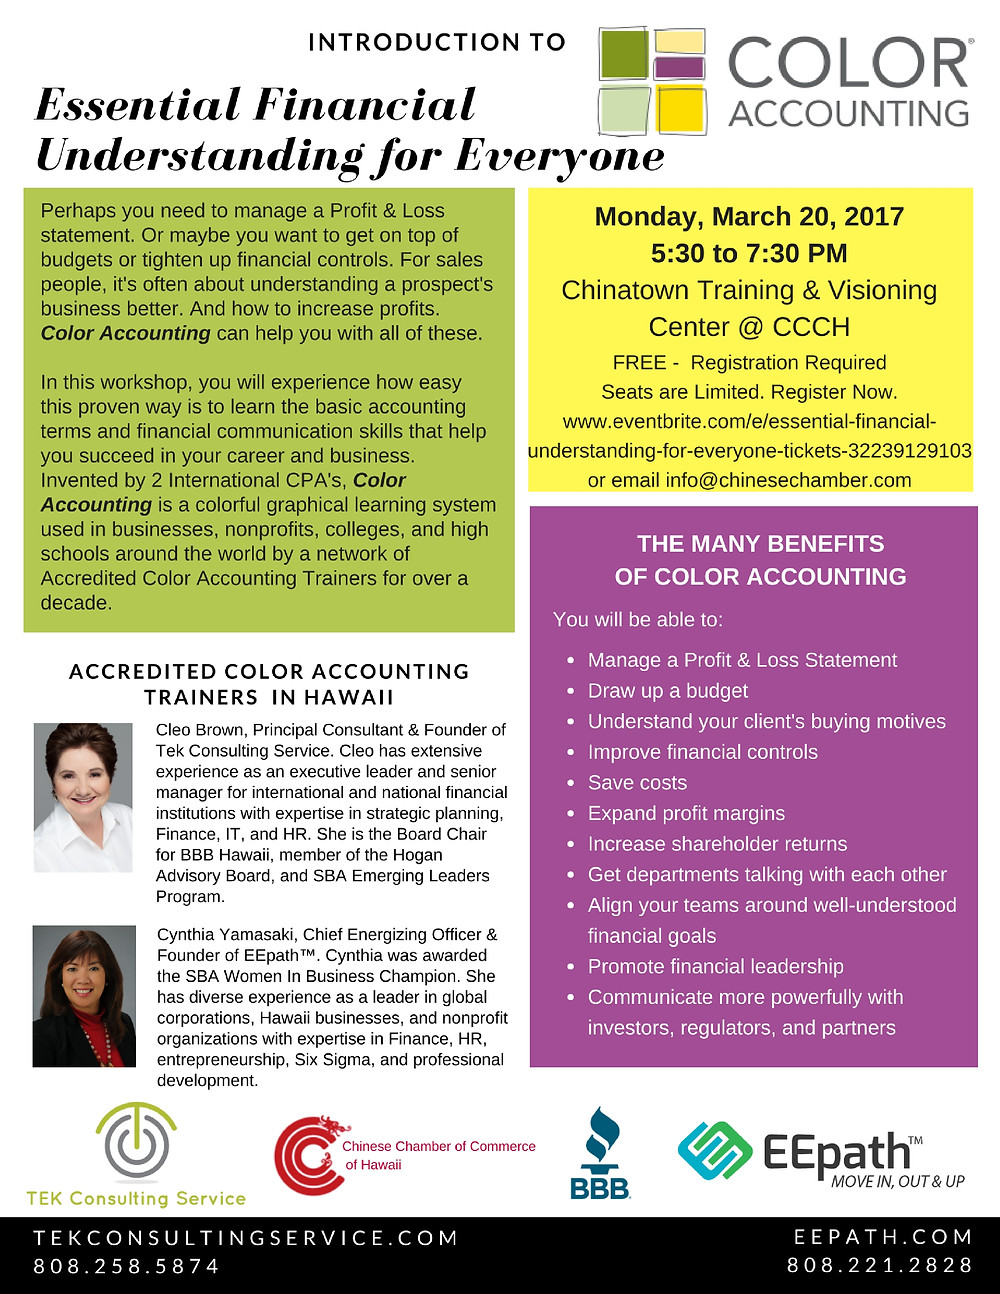 Intro to Color Accounting on March 20, 2017